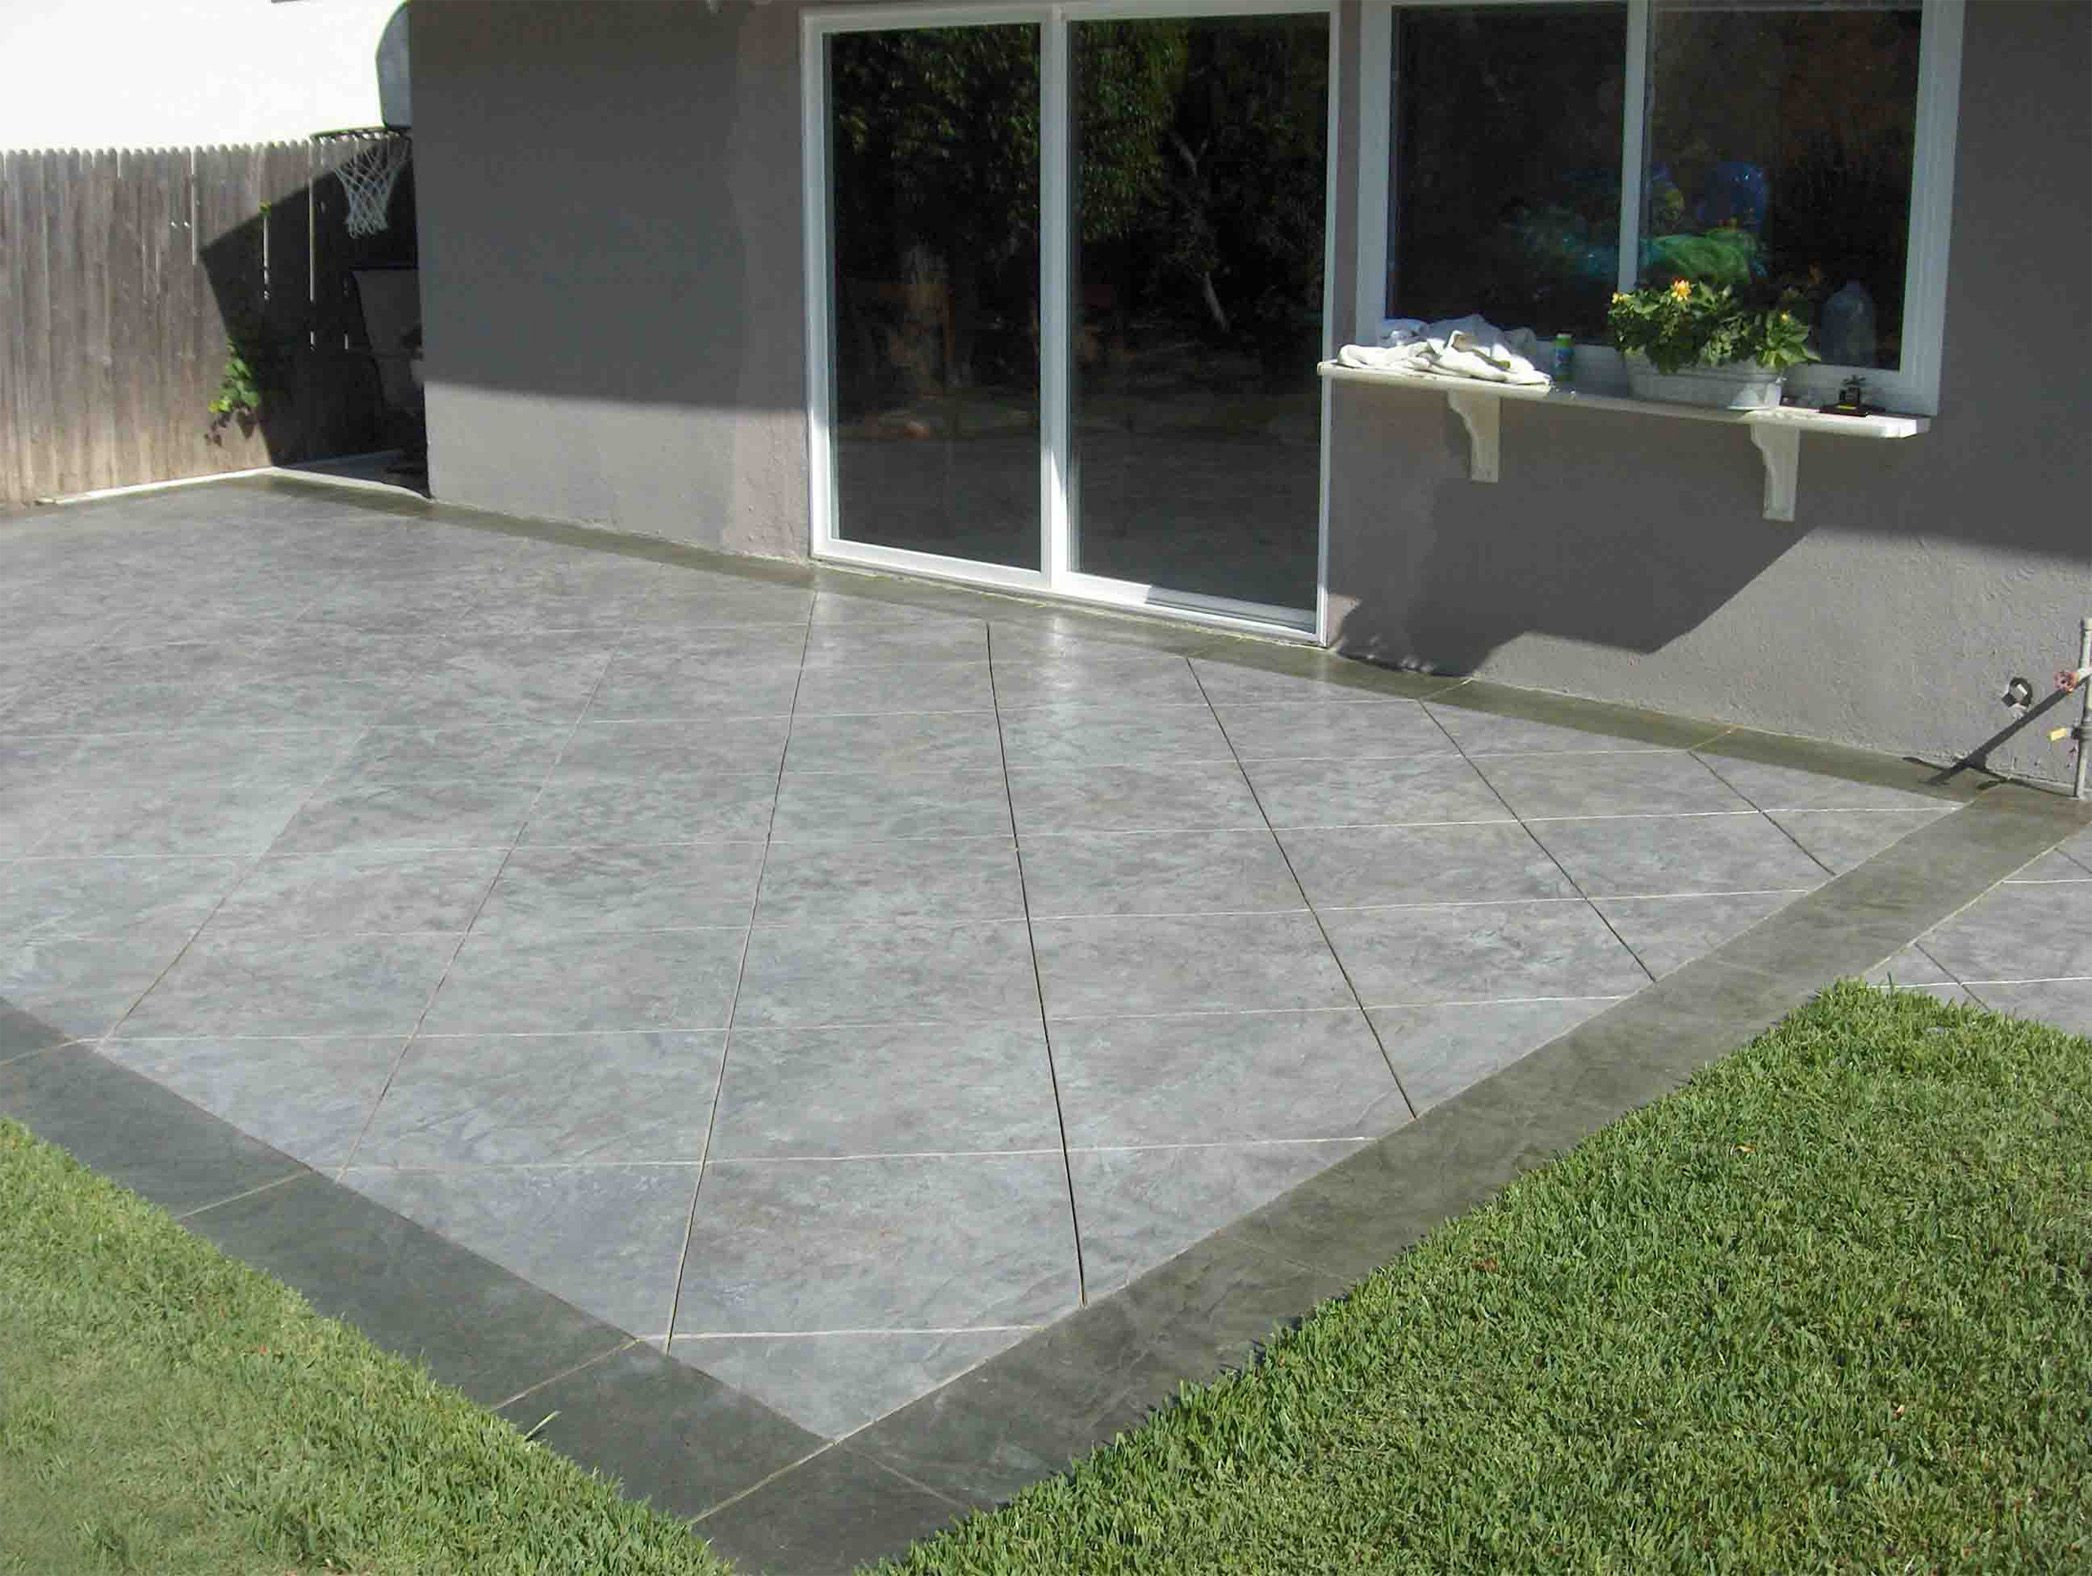 Best ideas about Concrete Patio Ideas . Save or Pin Stamped Concrete Patio Installation Do's and Don'ts Now.